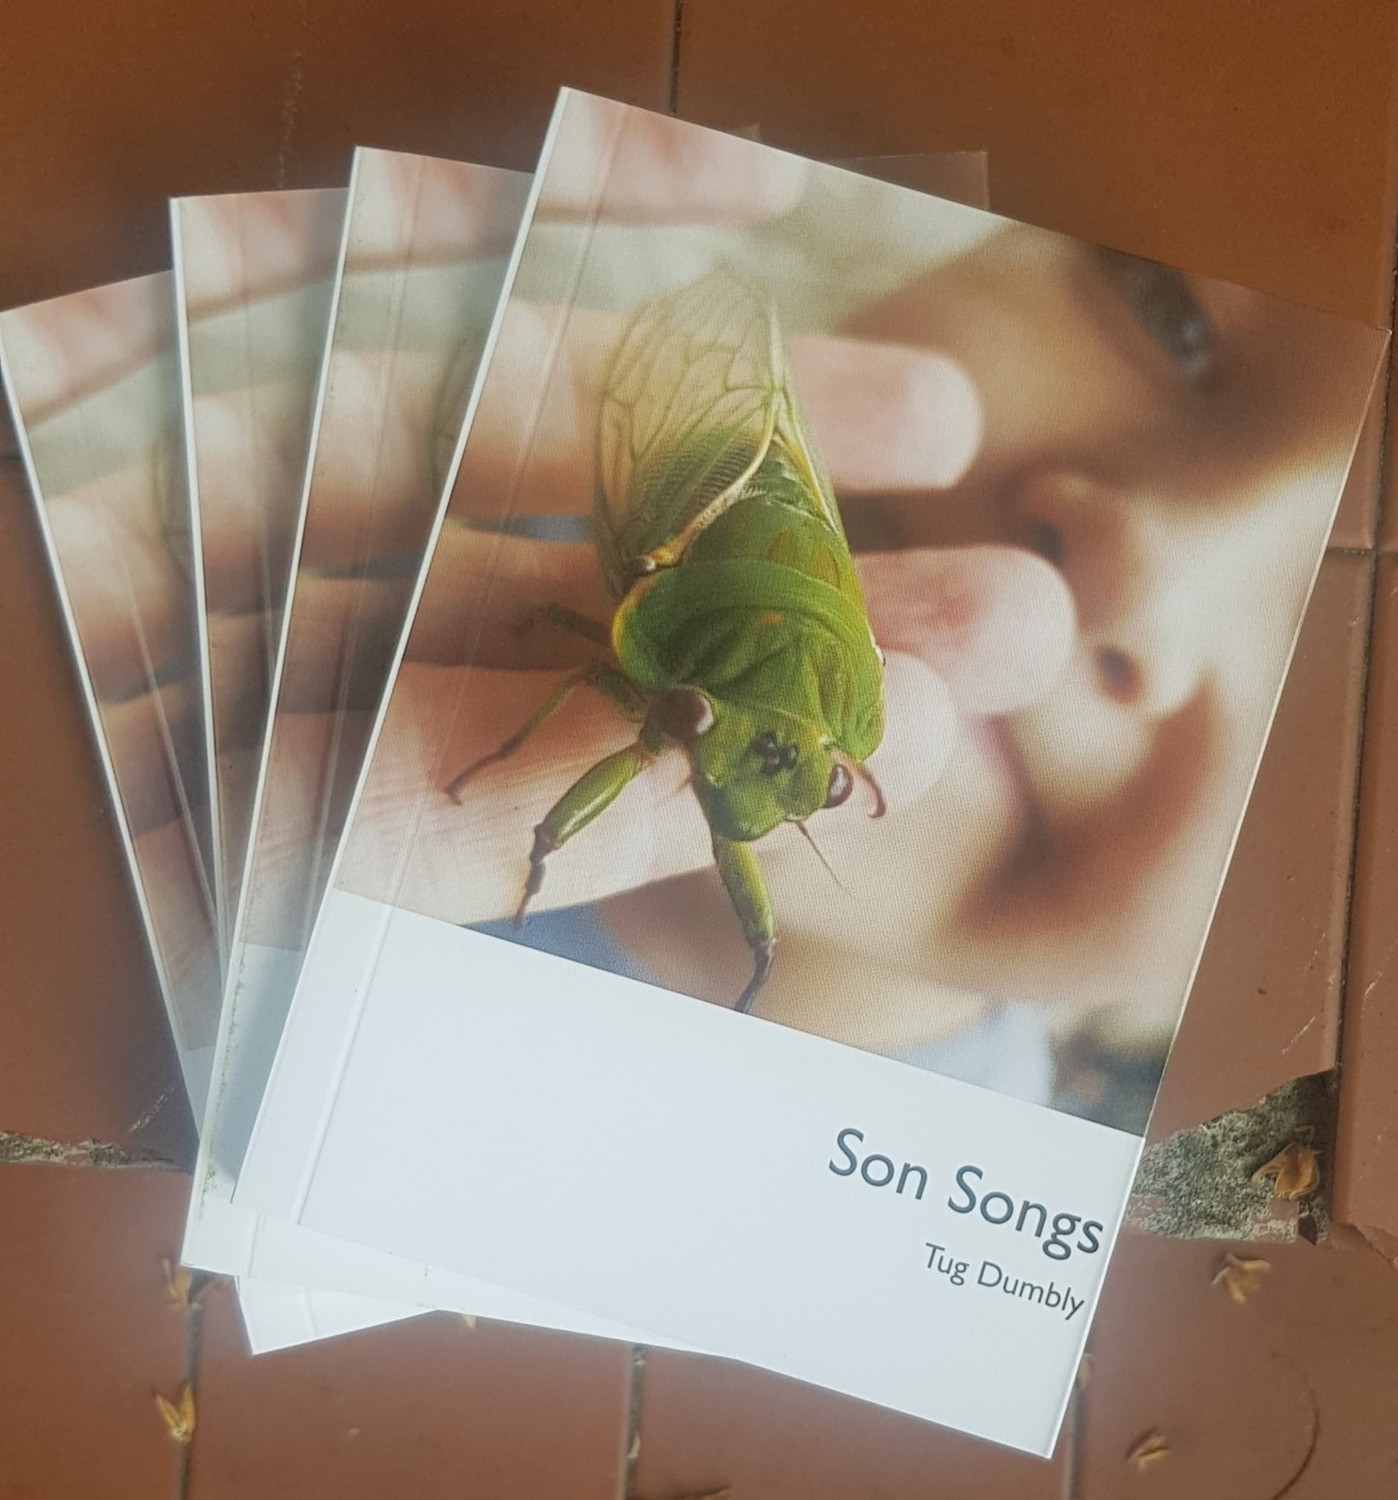 Poetry book Son Songs - Tug Dumbly